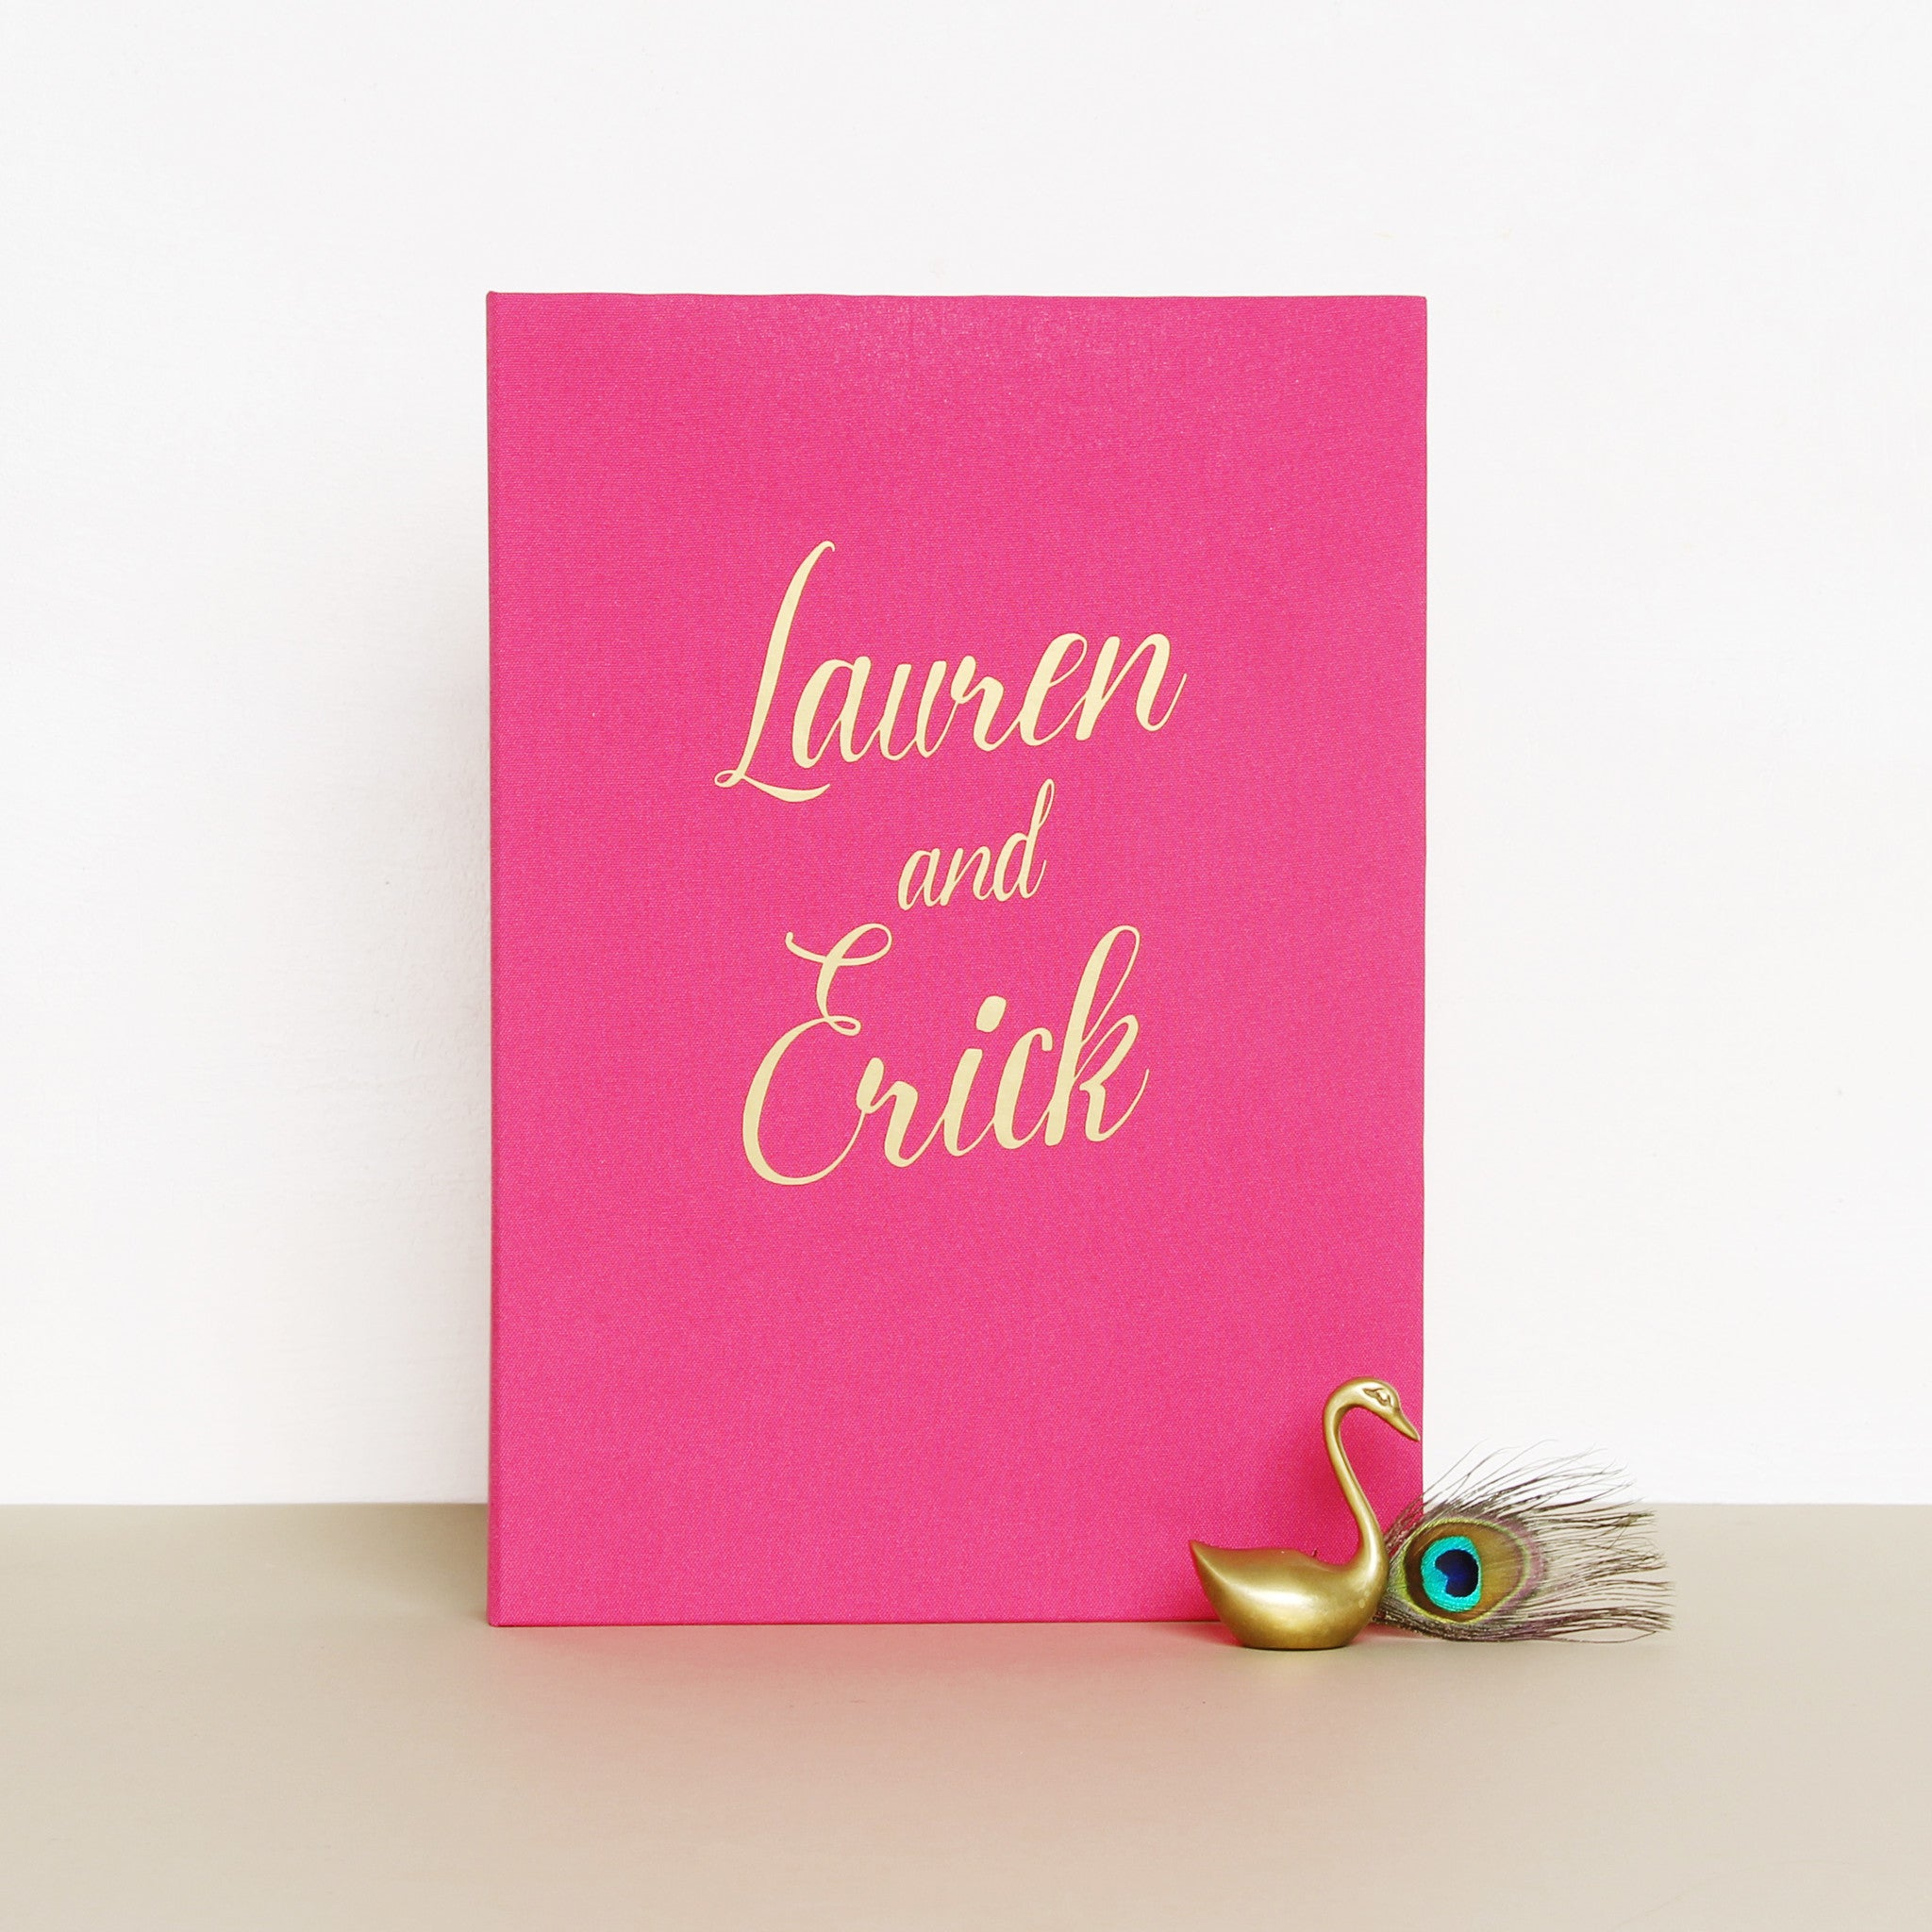 Polaroid Wedding Guest Book Album Magneta with Gold Lettering - Photoboot - Liumy